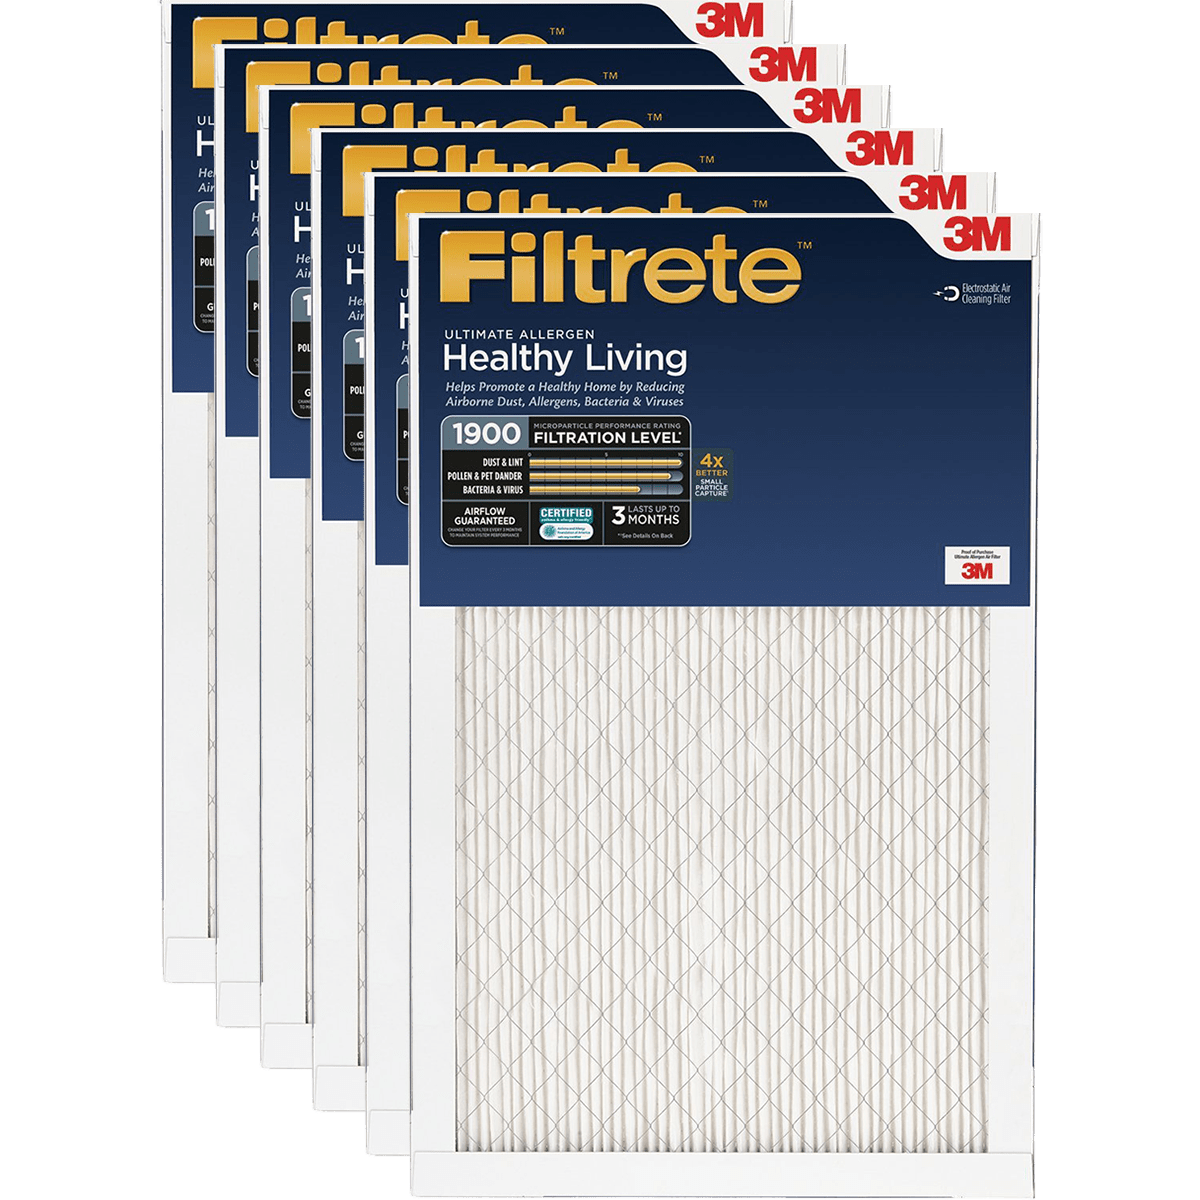 3M Filtrete Healthy Living 1900 MPR Ultimate Allergen Reduction Air Filters fi5348